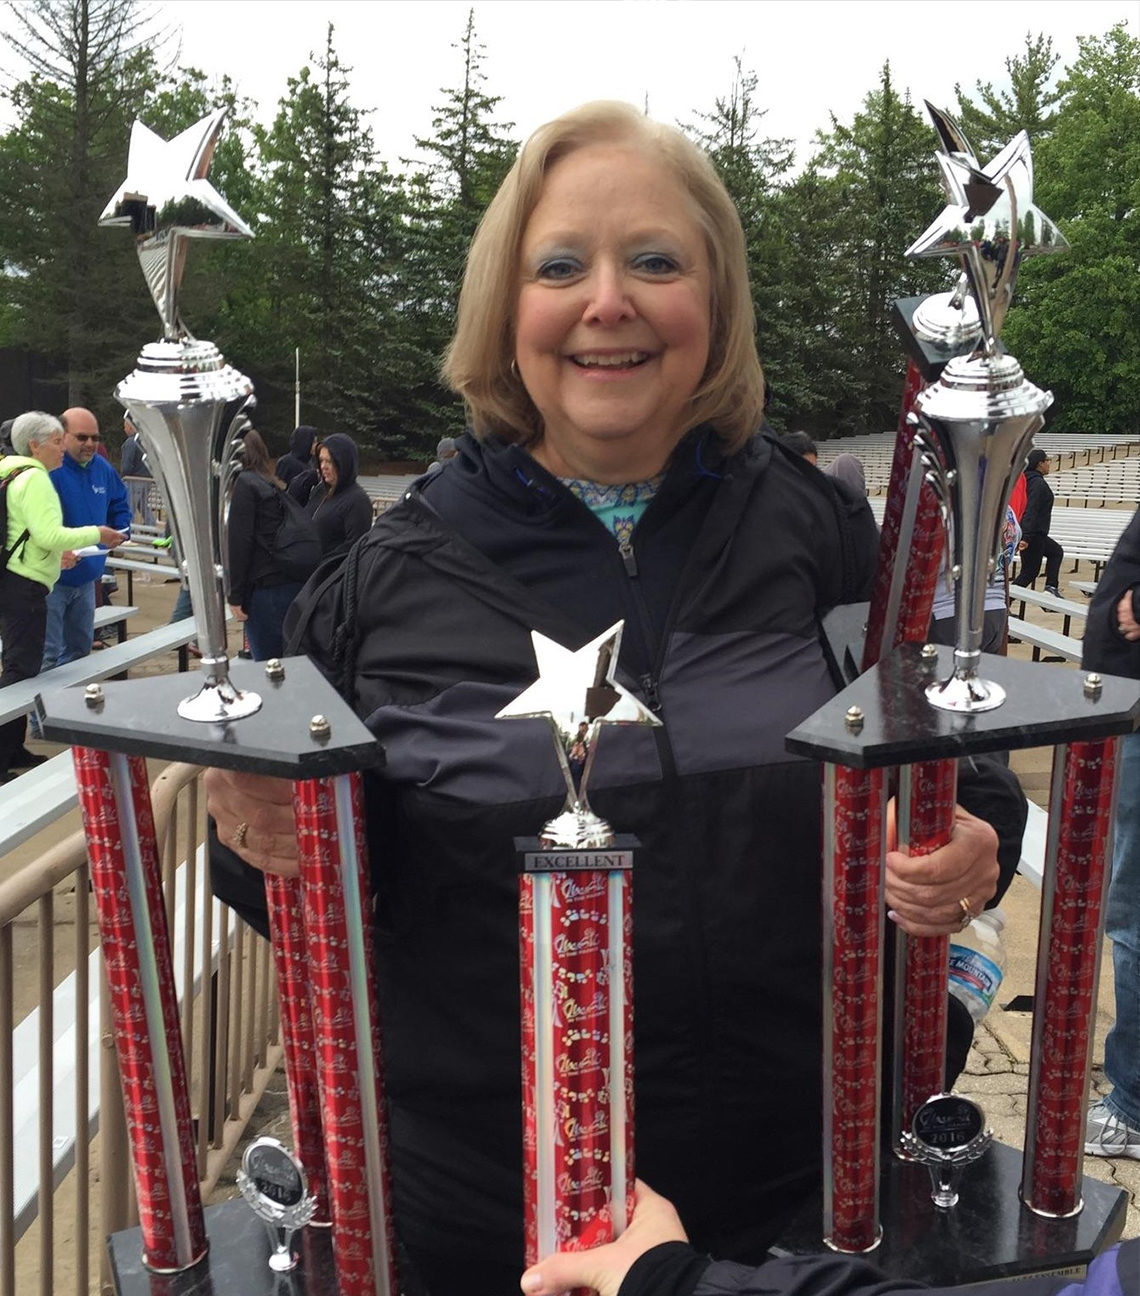 Teri Aitchison - The keeper of the Music in the Parks awards.